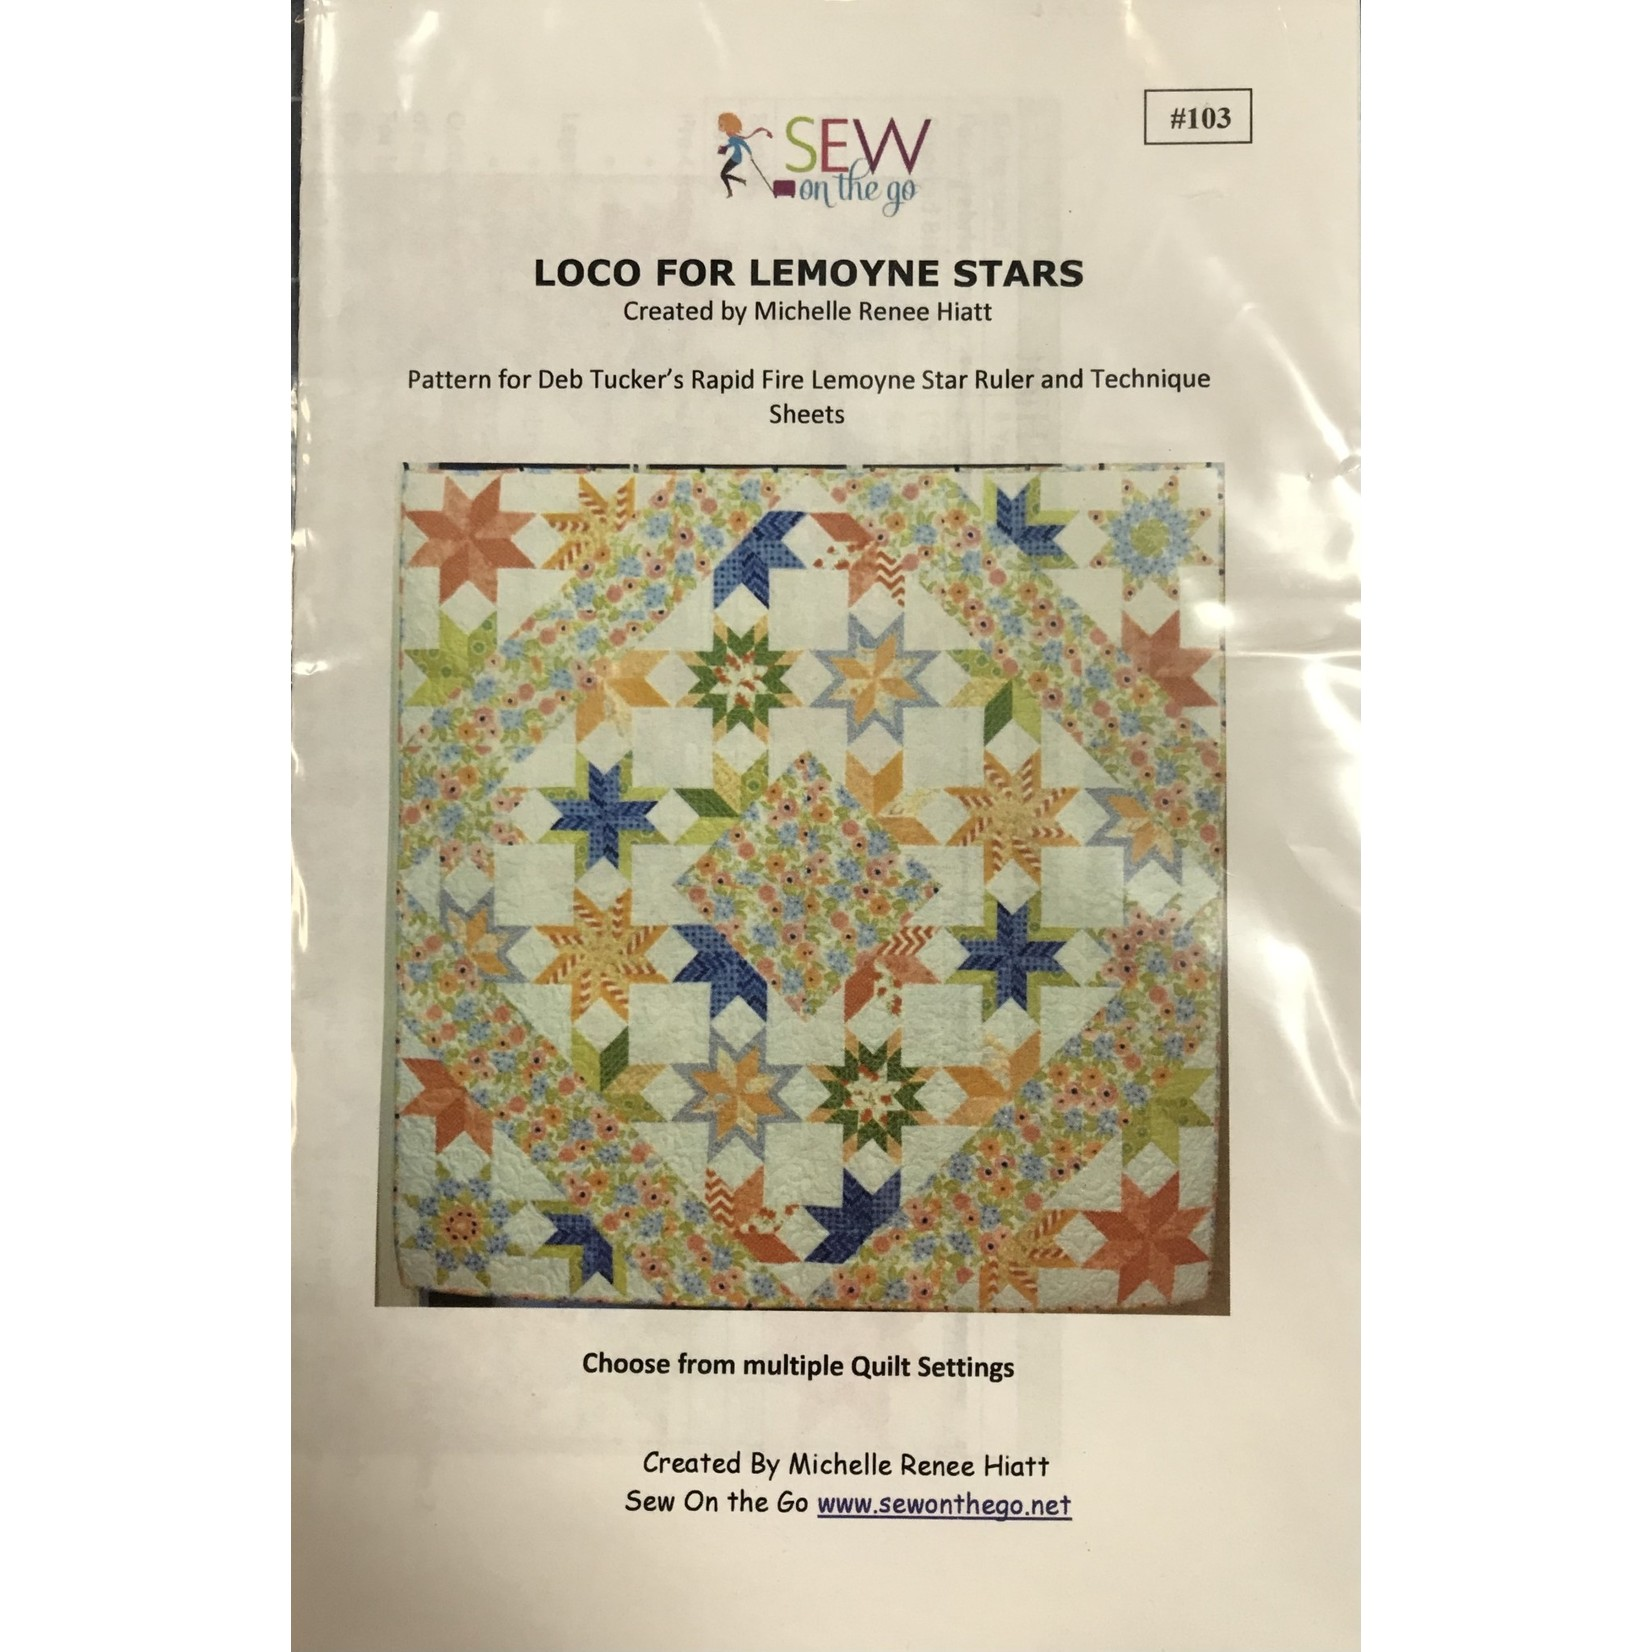 SEW ON THE GO LOCO for LEMOYNE STARS PATTERN